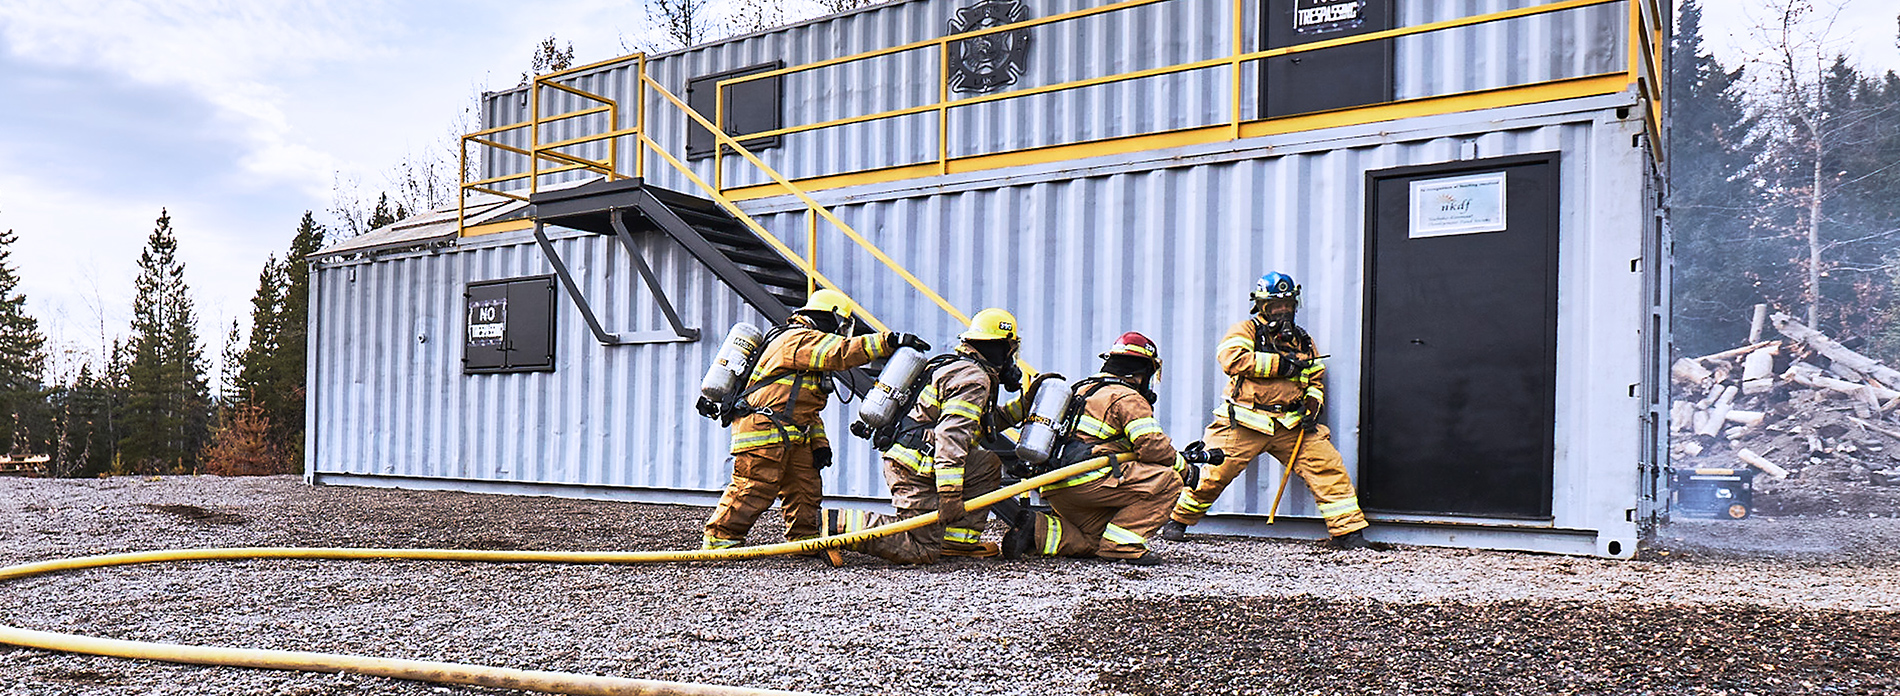 Training facility fires up for first responders - Burns Lake